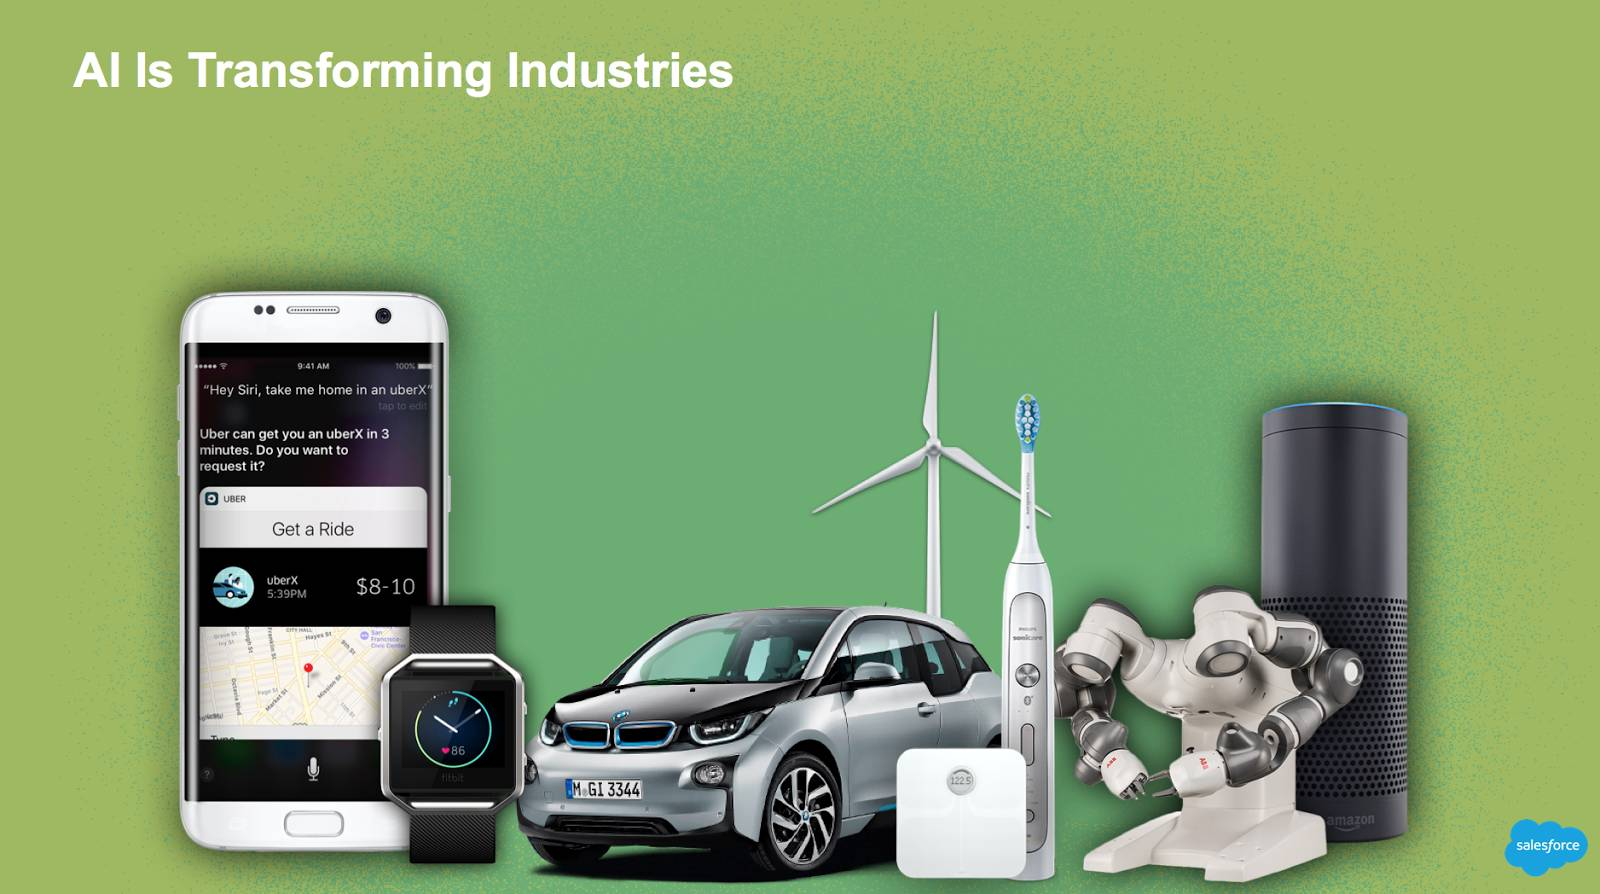 AI is transforming industries: Image shows a smartphone, smartwatch, electric toothbrush, Amazon Echo, robot, and connected car, scale, and wind turbine